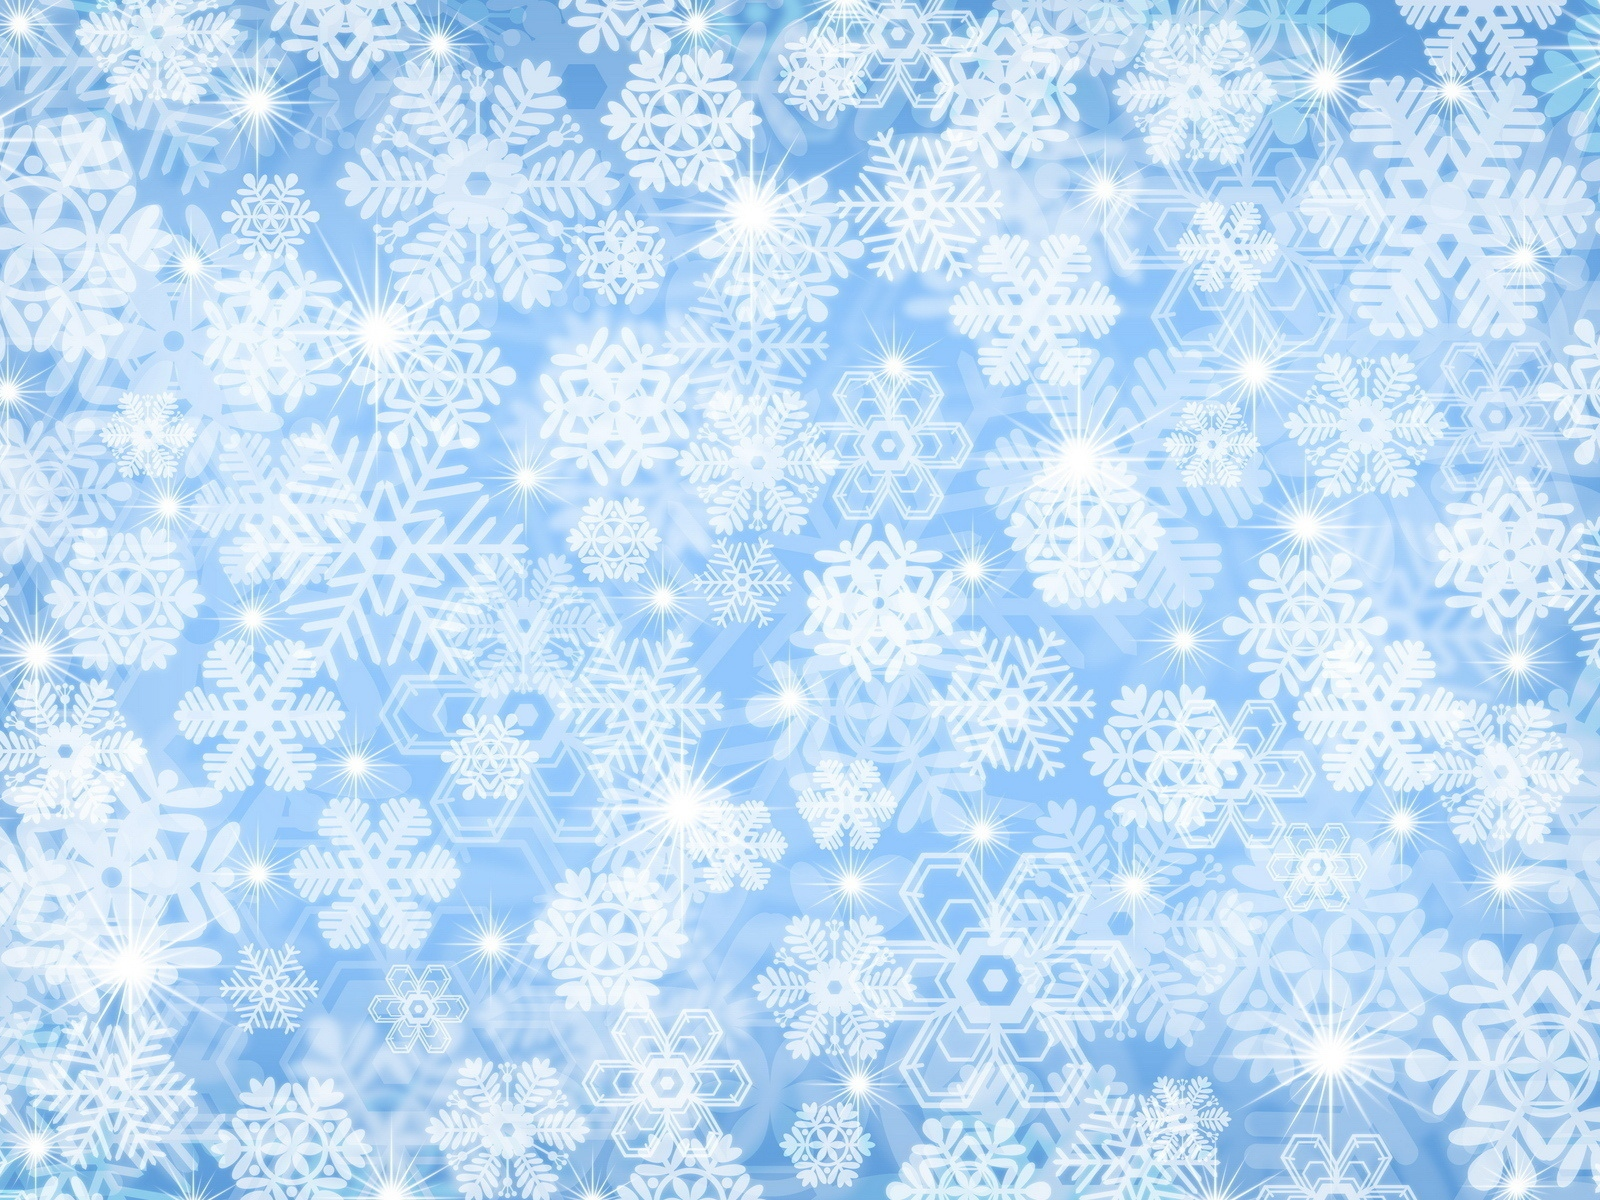 Cool Snowflake Background 18291 18755 Hd Wallpapers